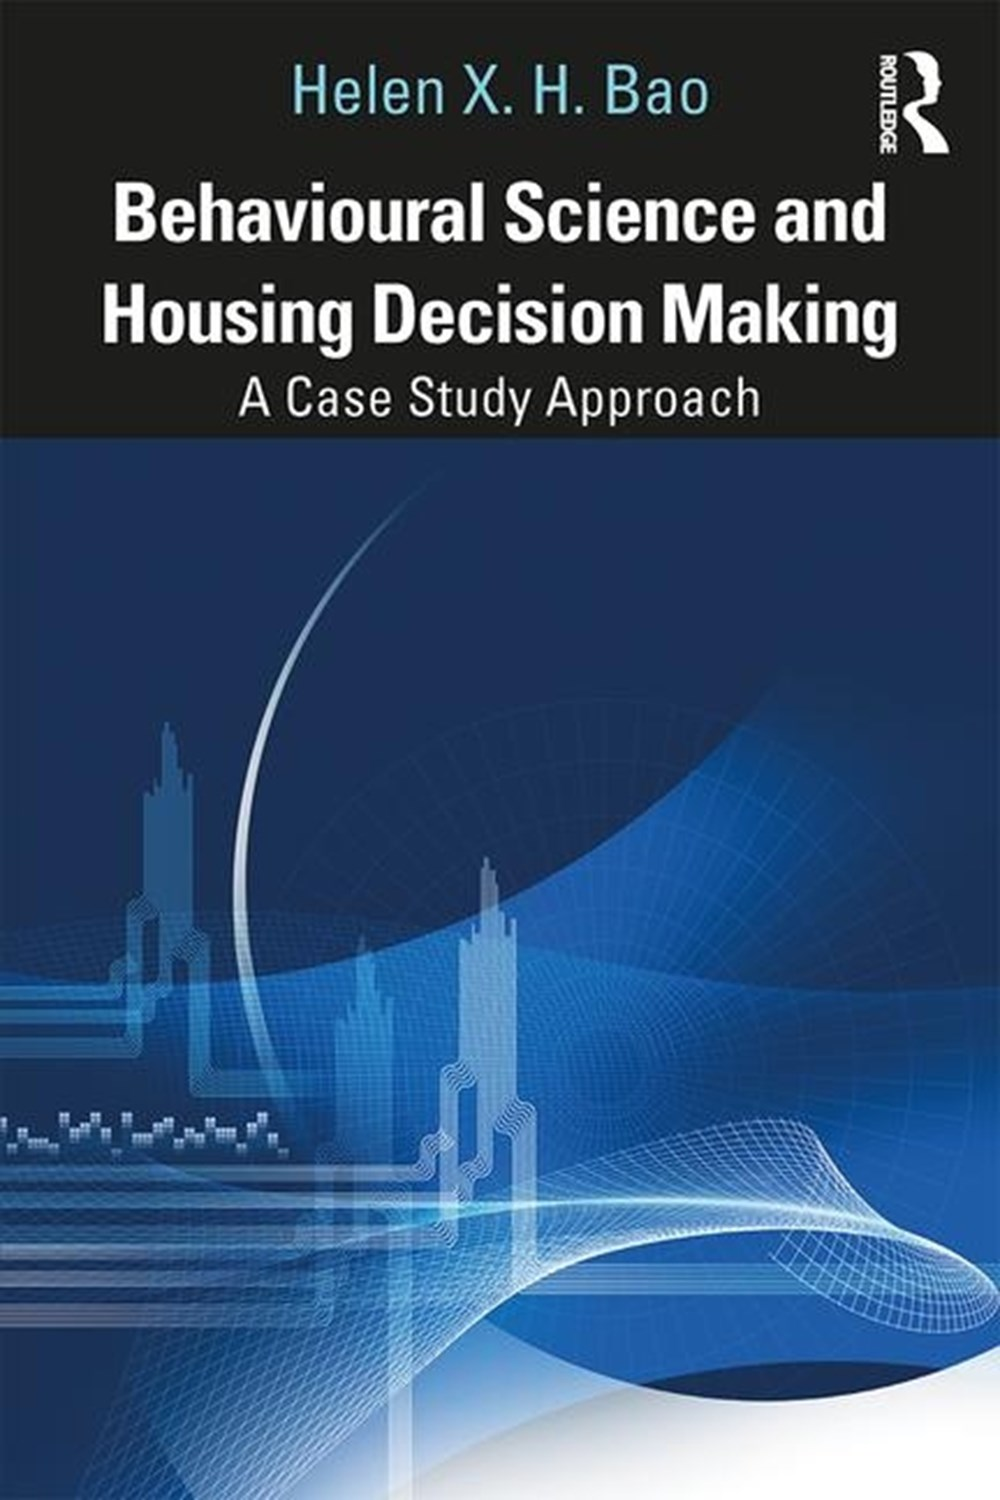 Behavioural Science and Housing Decision Making A Case Study Approach